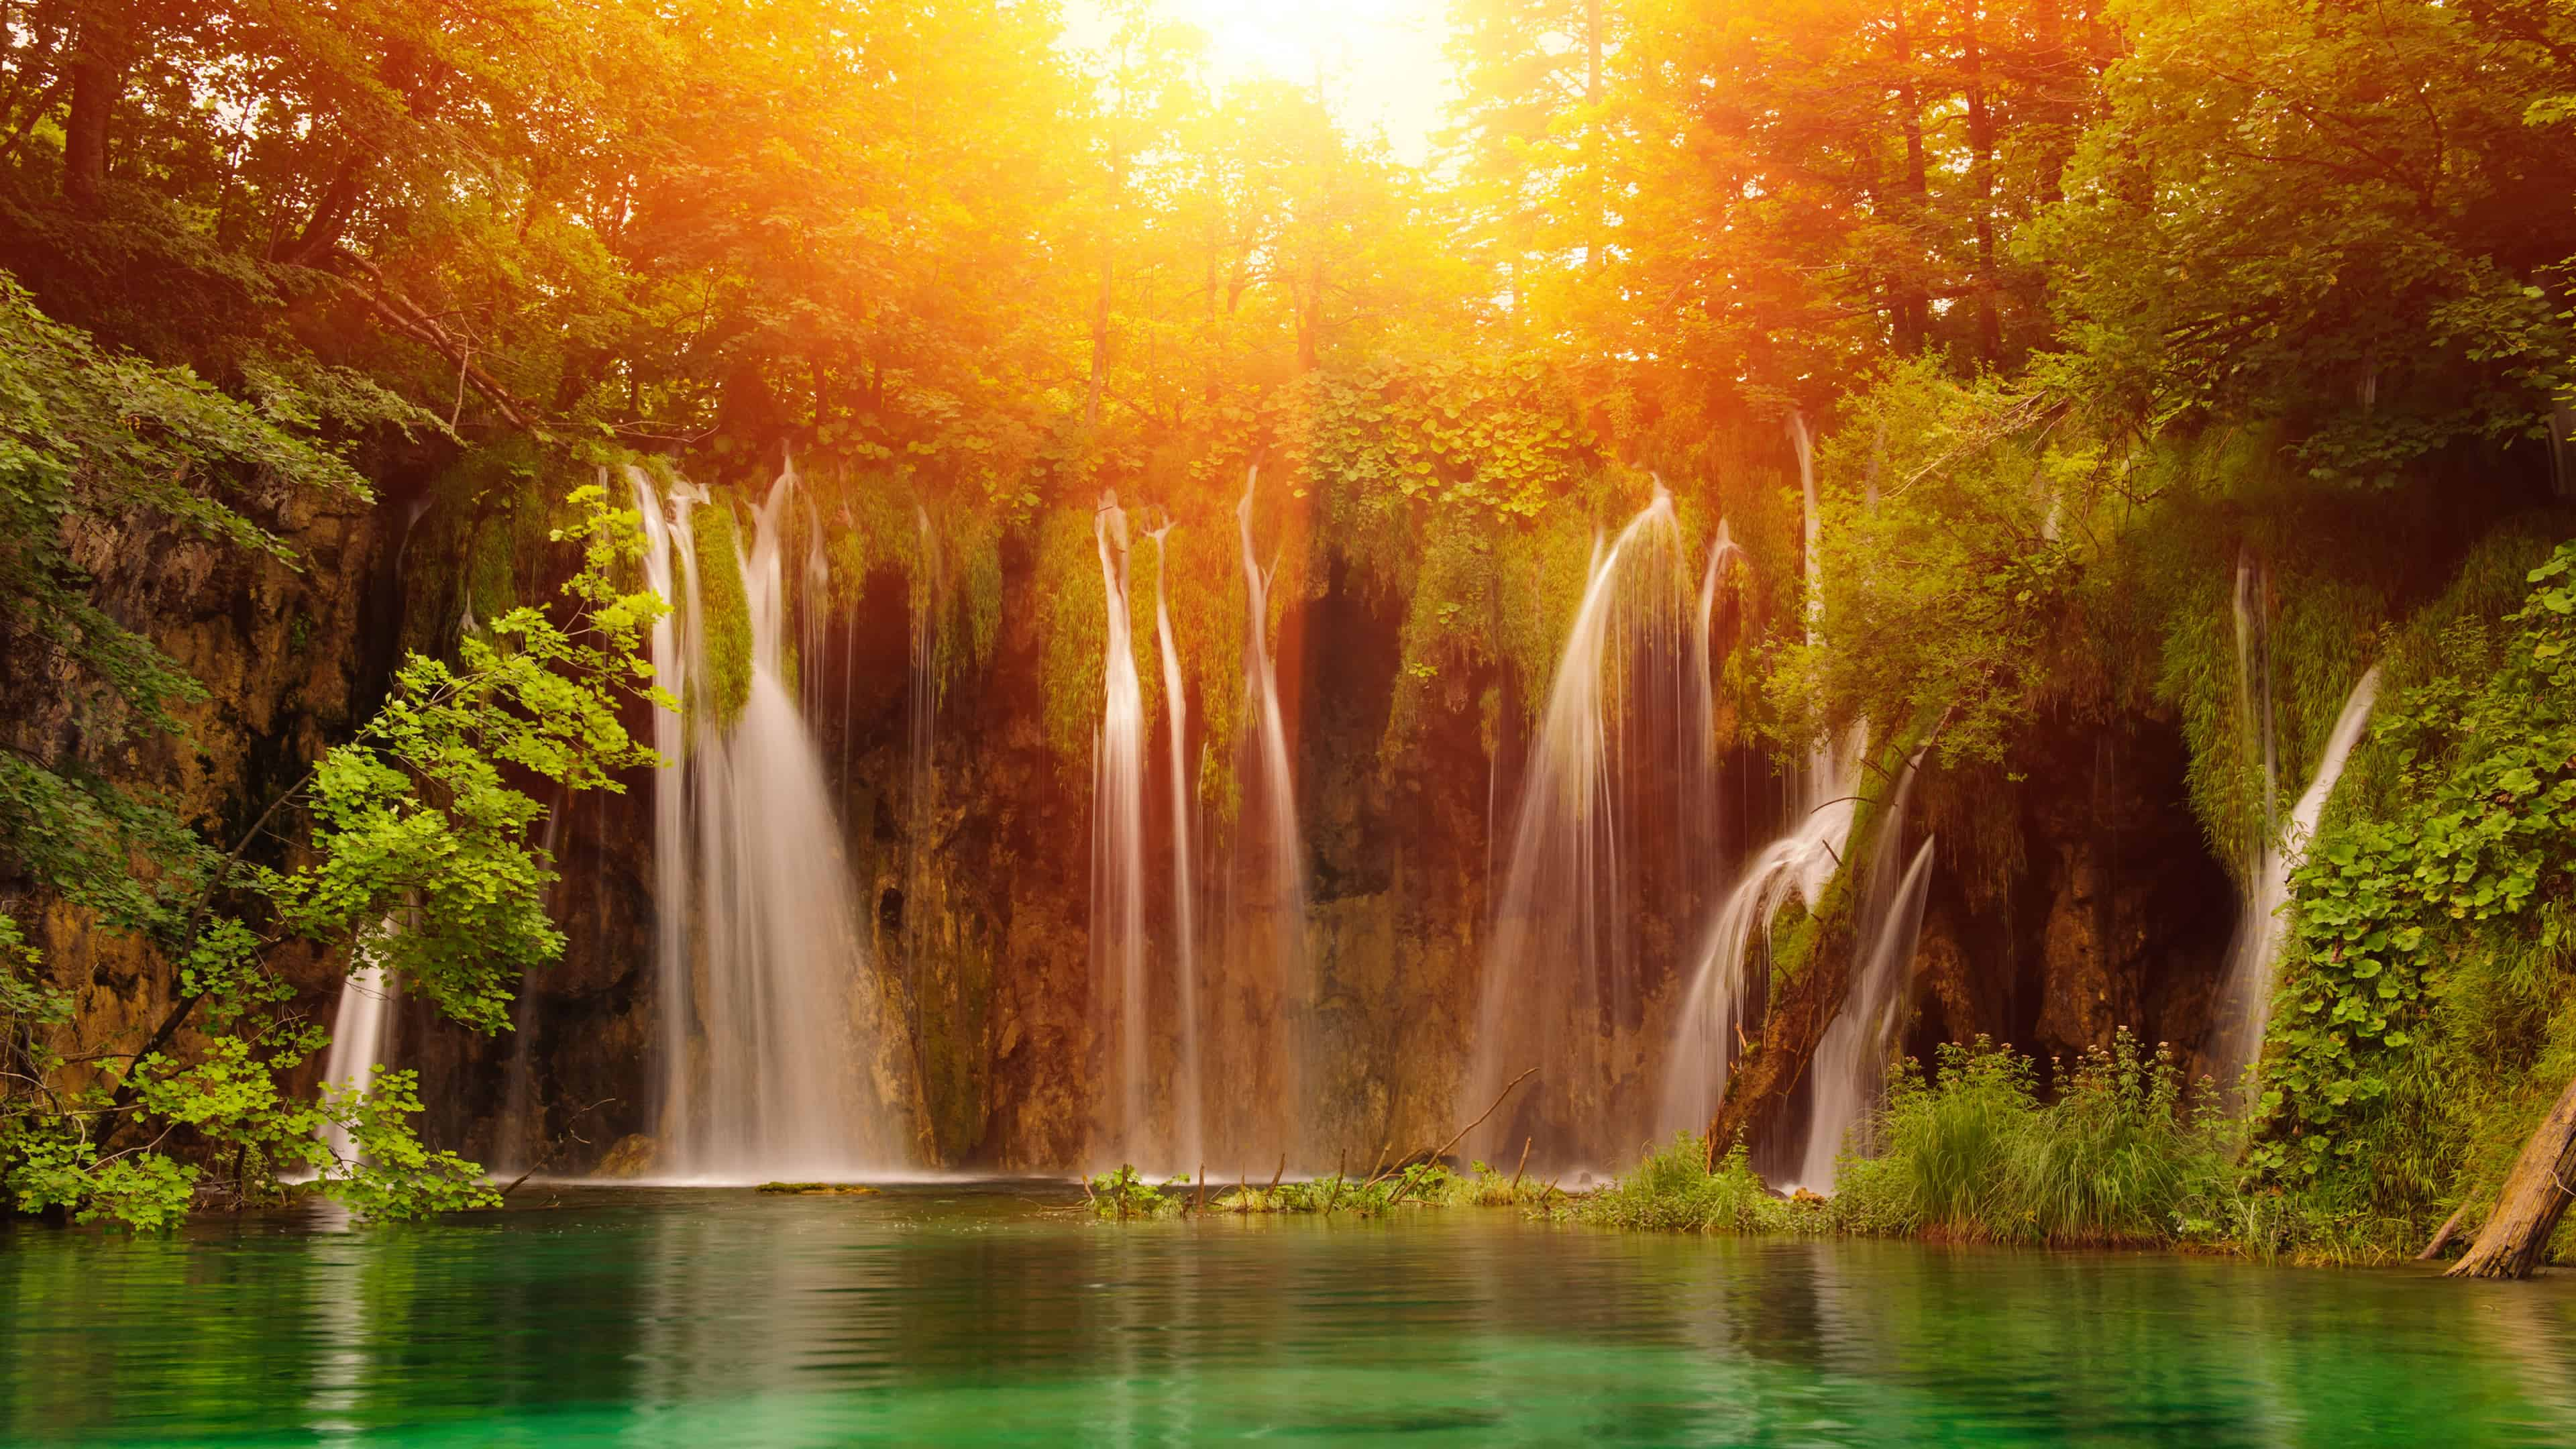 Waterfall Plitvice Lakes National Park Croatia UHD 4K Wallpaper 3840x2160